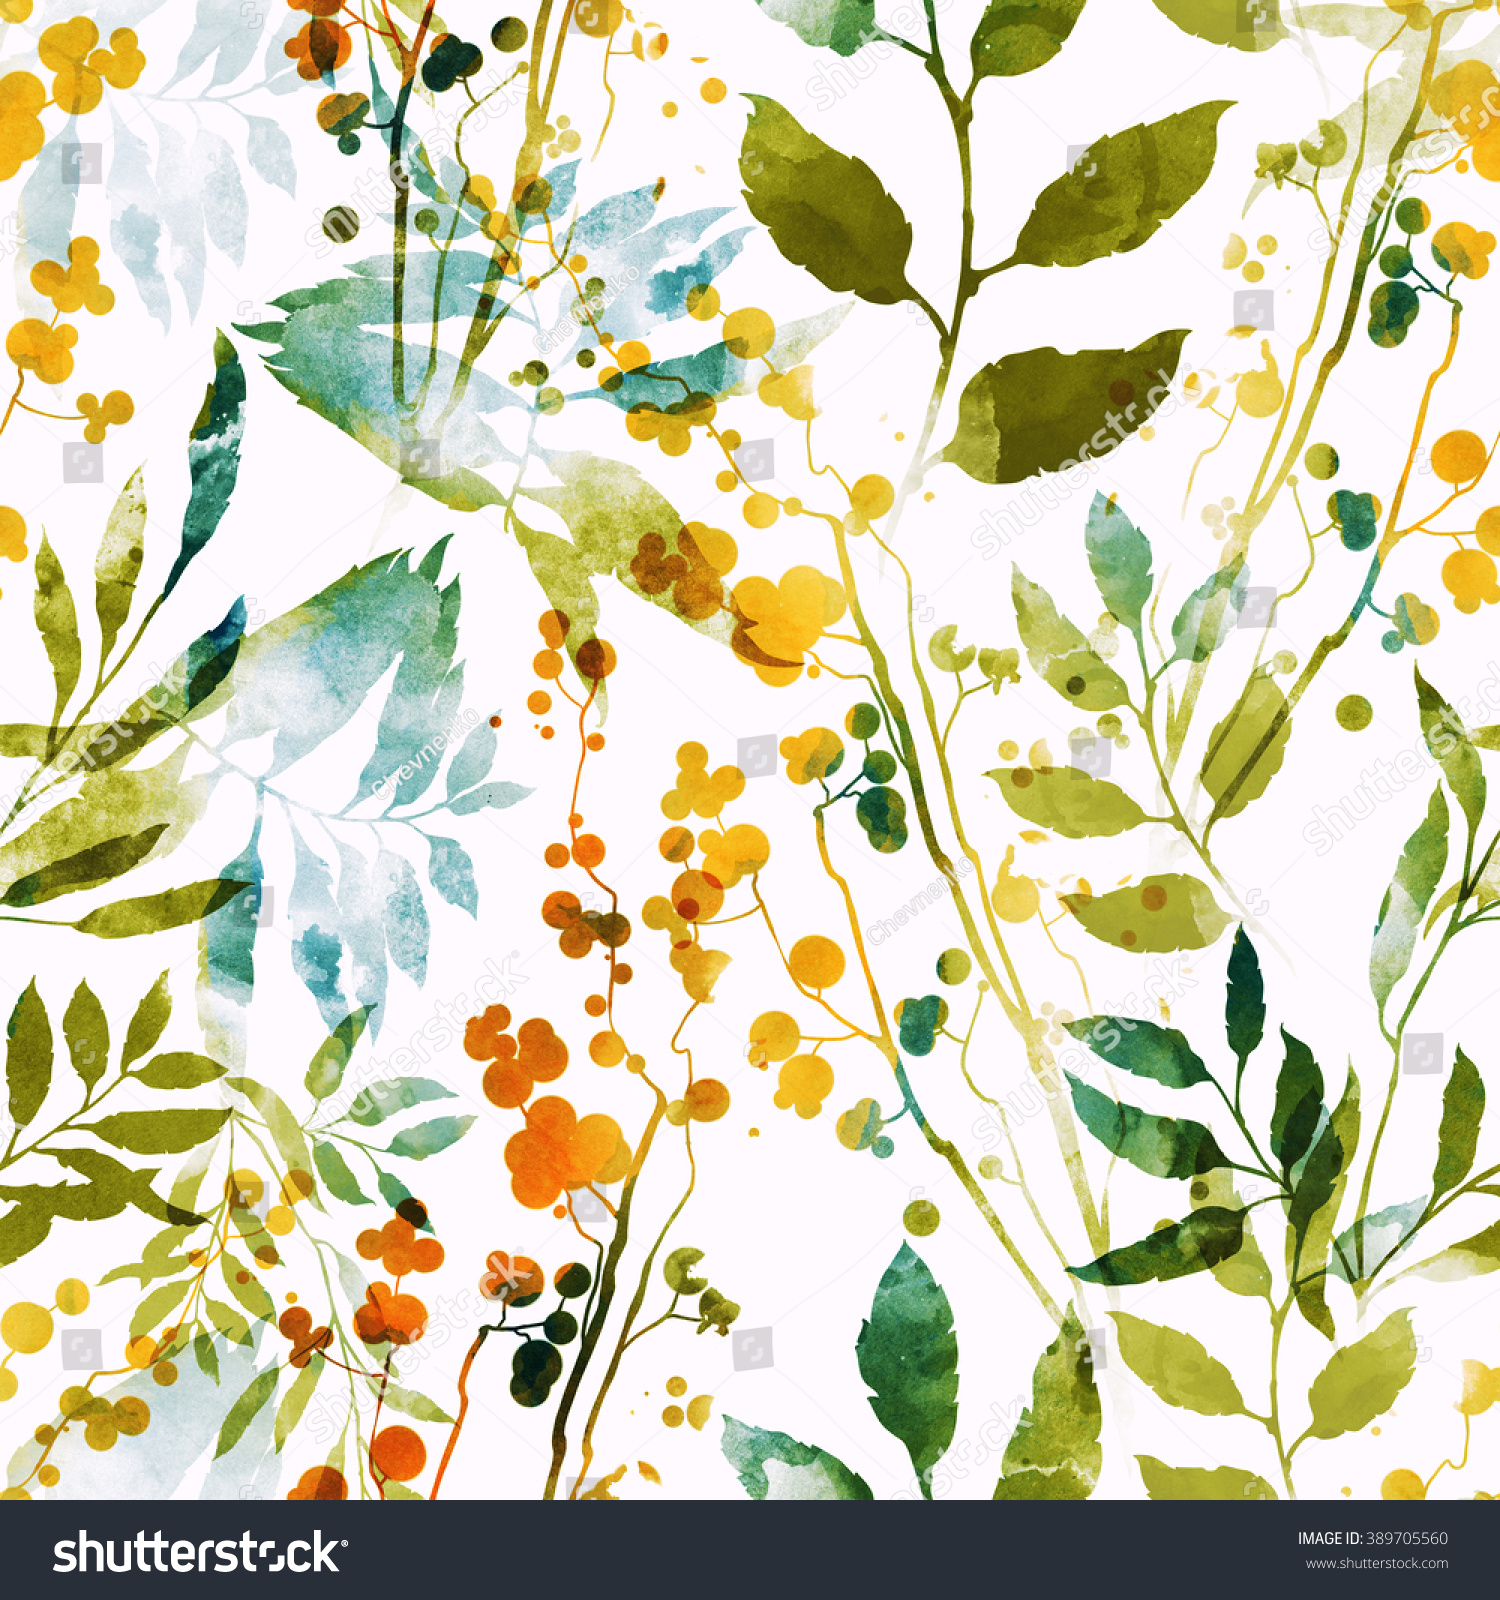 Stock Photo Imprints Herbs Flowers And Leaves Abstract Watercolor Digital Image Hand Drawn Boho Spring 389705560